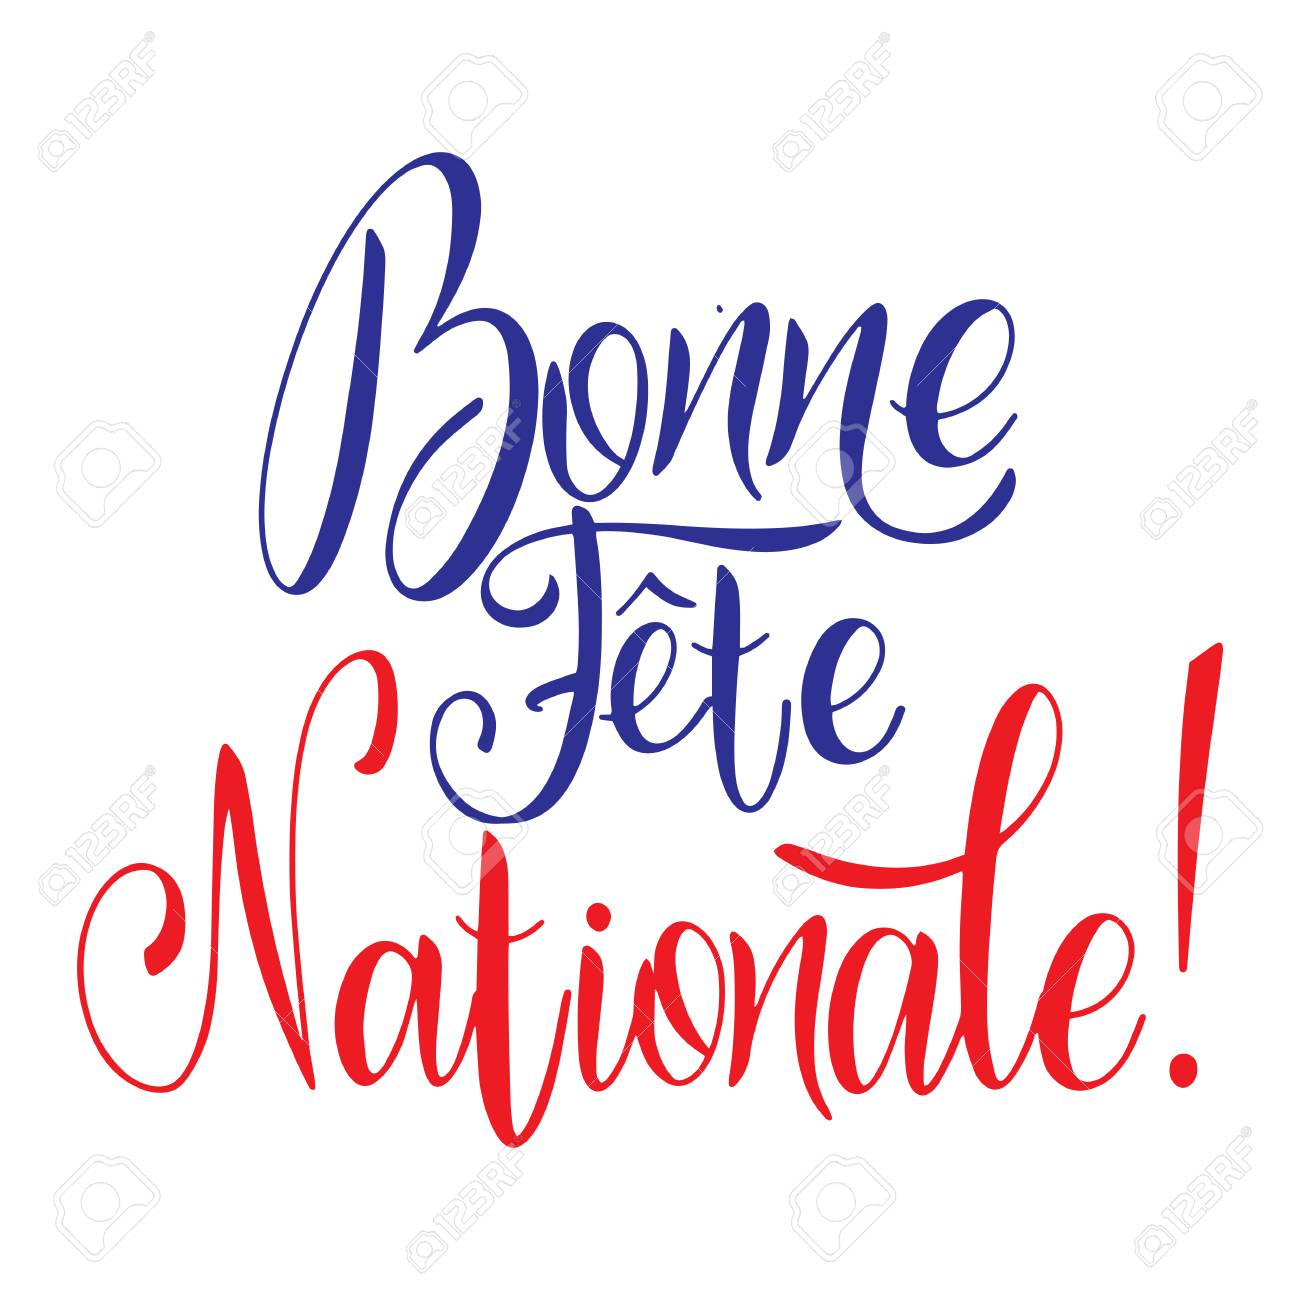 Bastille day hand drawn lettering. Happy National day on French. Bonne Fete Nationale. Vector elements for invitations, posters, greeting cards. T-shirt design - 117031400